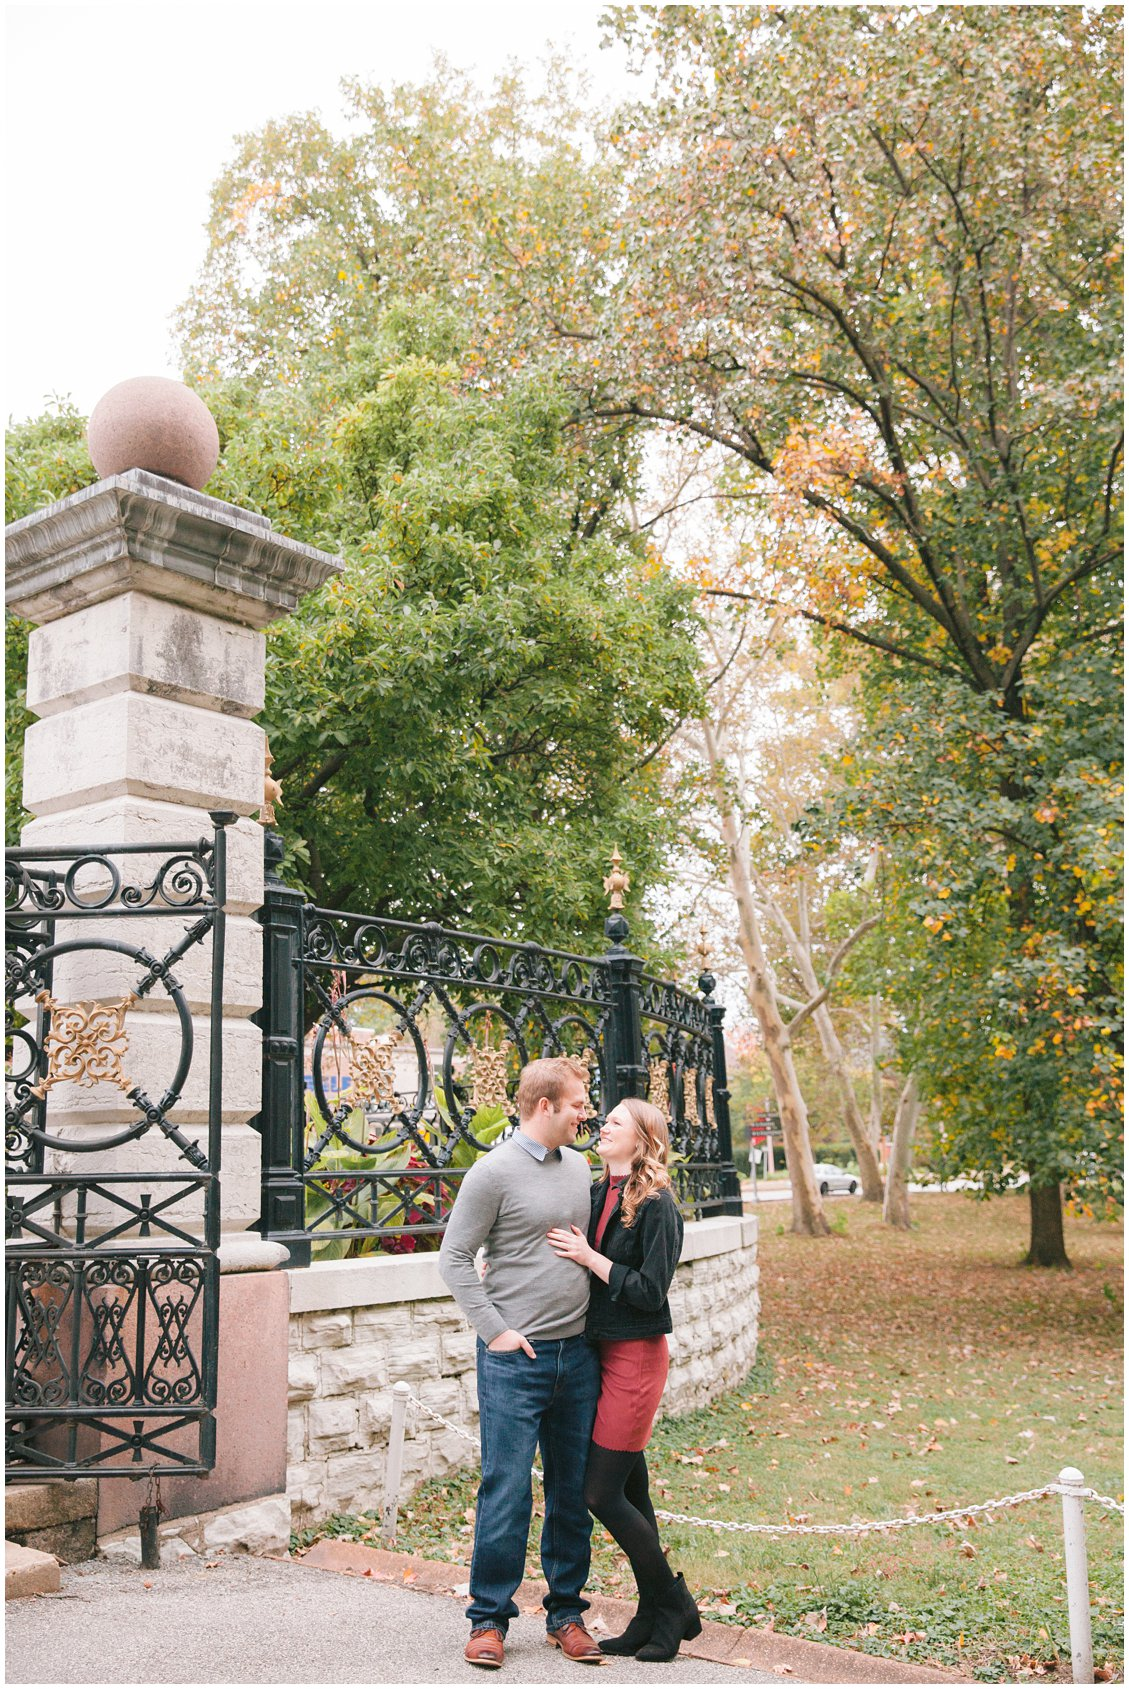 Gold, oval engagement ring & fall engagement photography session in Tower Grove Park, St Louis